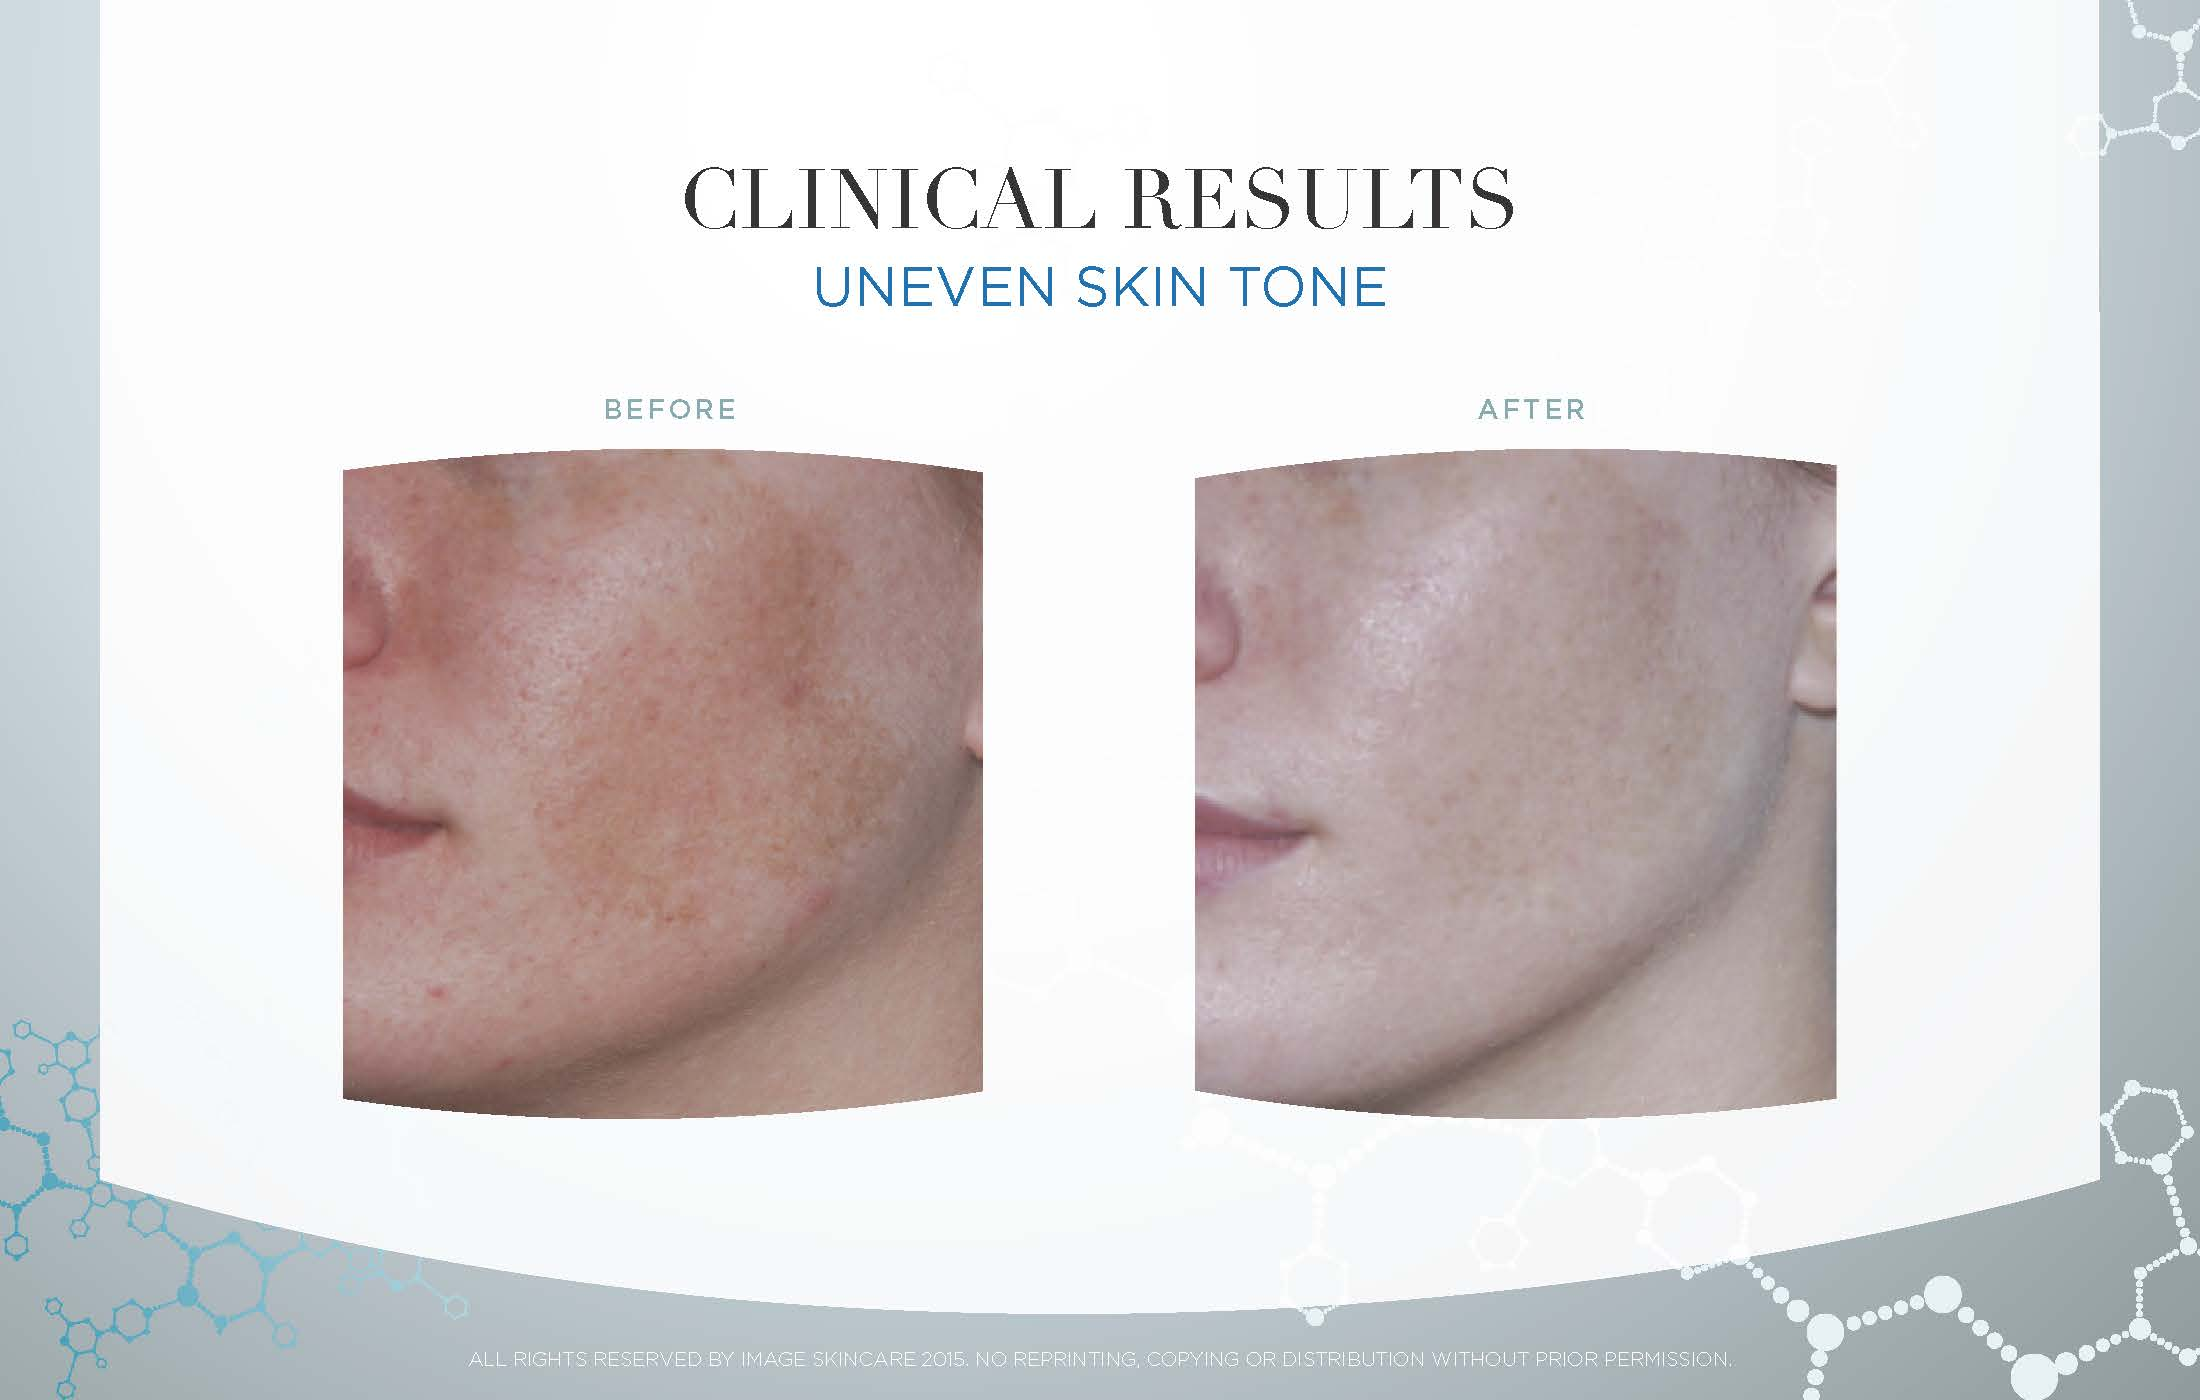 Uneven Skintone Results